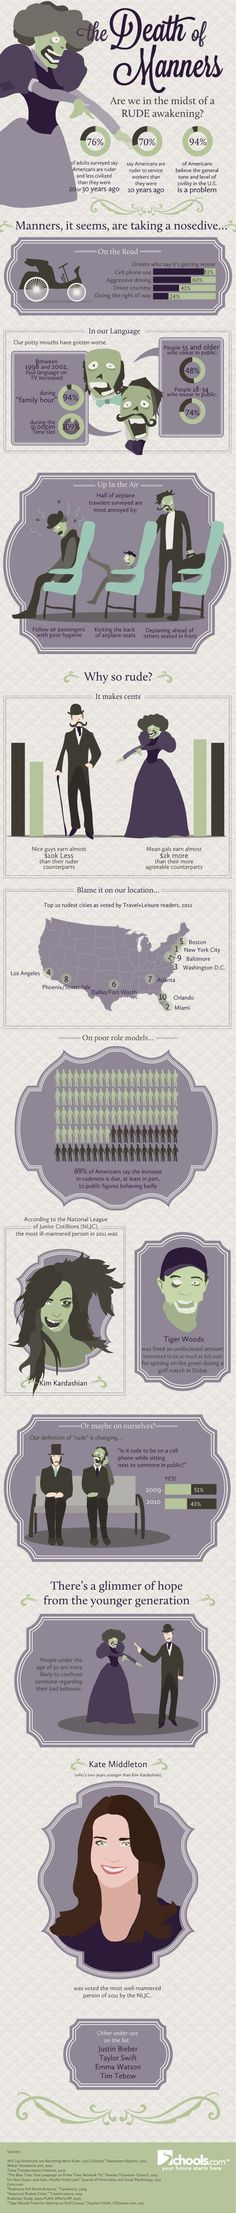 The Death of Manners [Infographic]